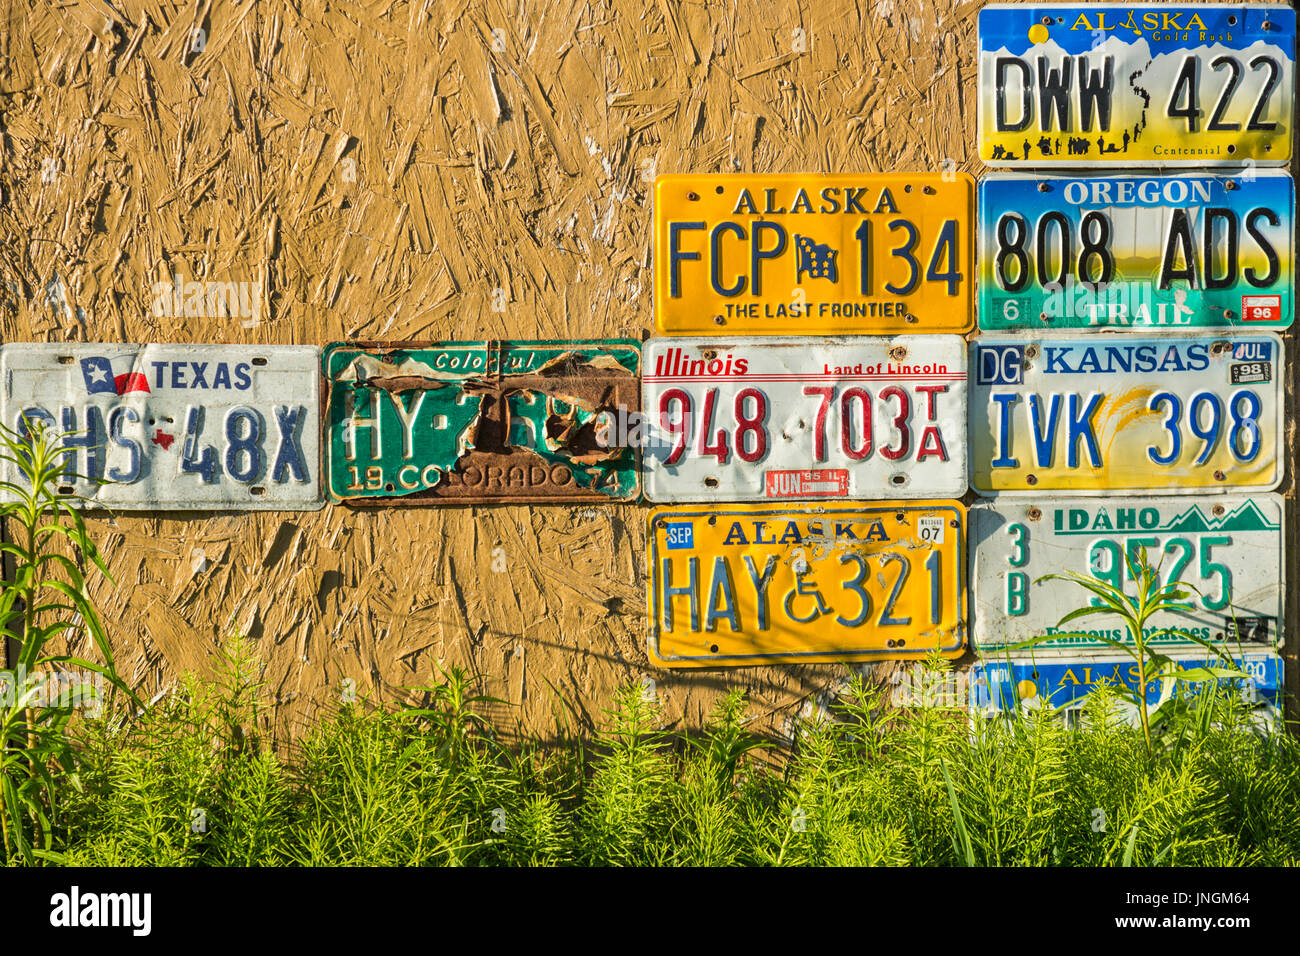 Usa Number Plate Stock Photos & Usa Number Plate Stock Images - Alamy